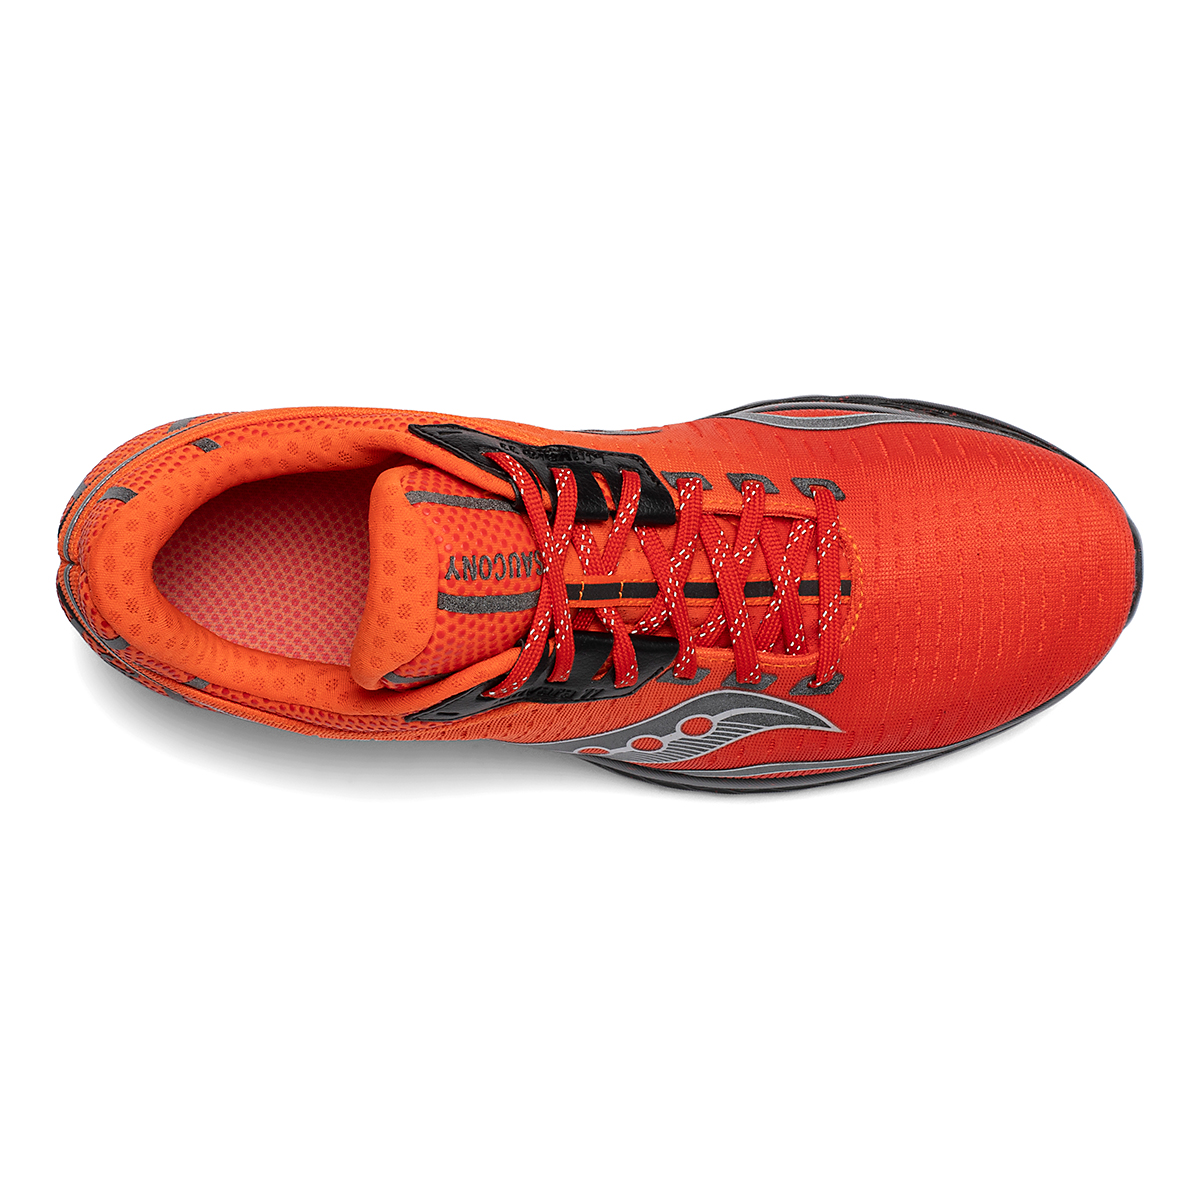 Saucony Shoes with Soul Kinvara 11 Running Shoe - Color: Eddie - Size: M3.5/W5 - Width: Regular, Eddie, large, image 2